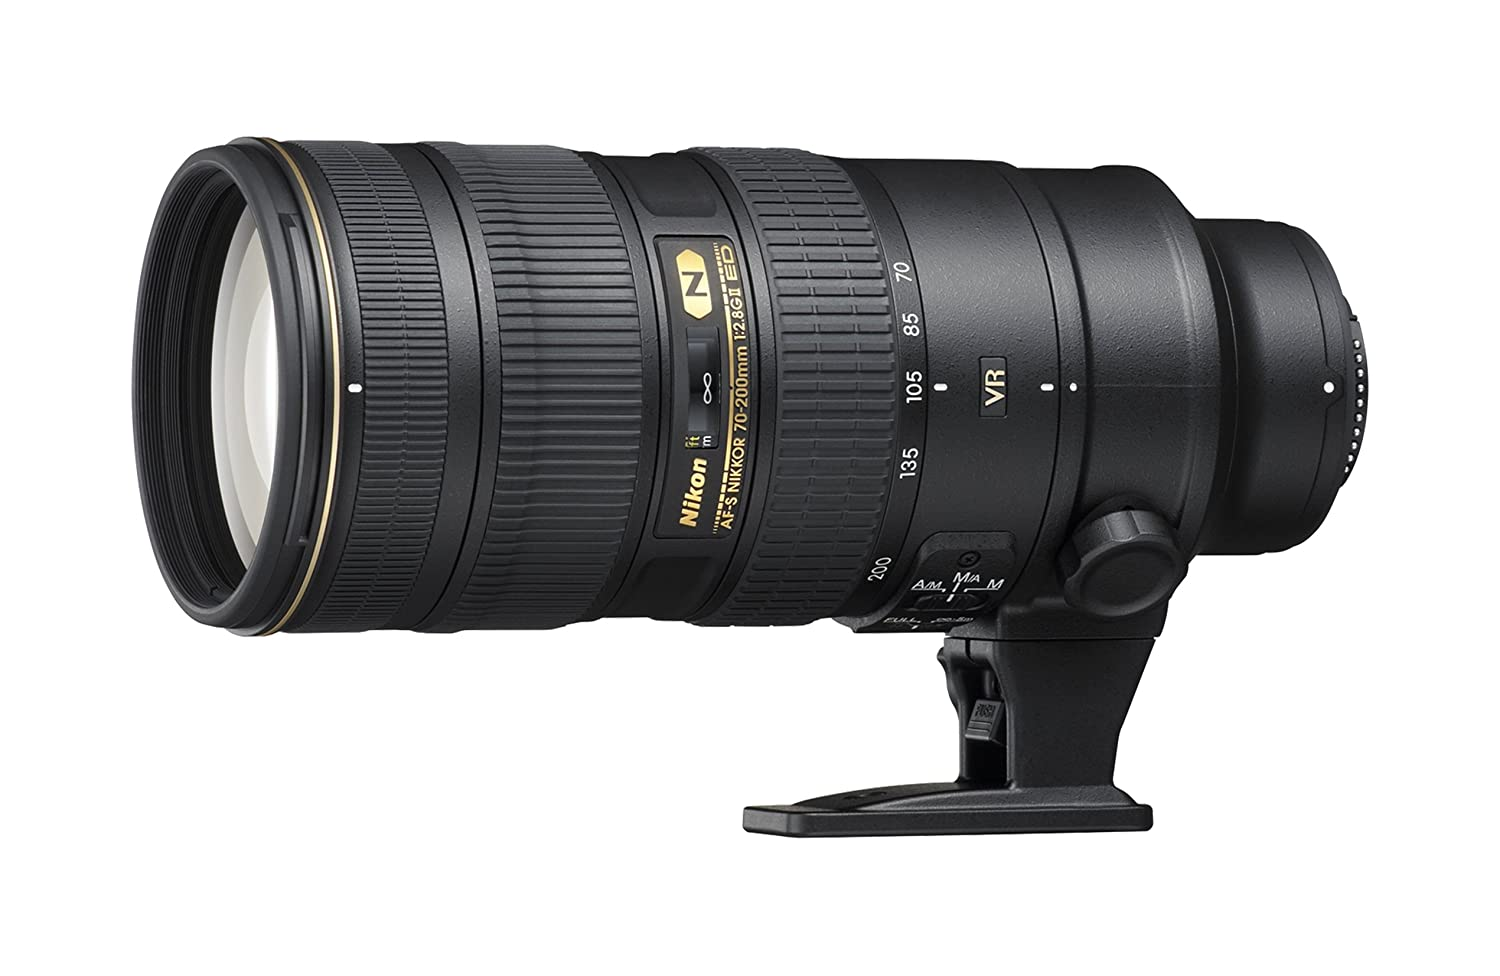 Nikon AF-S NIKKOR 70-200mm Black Friday Deals 2019